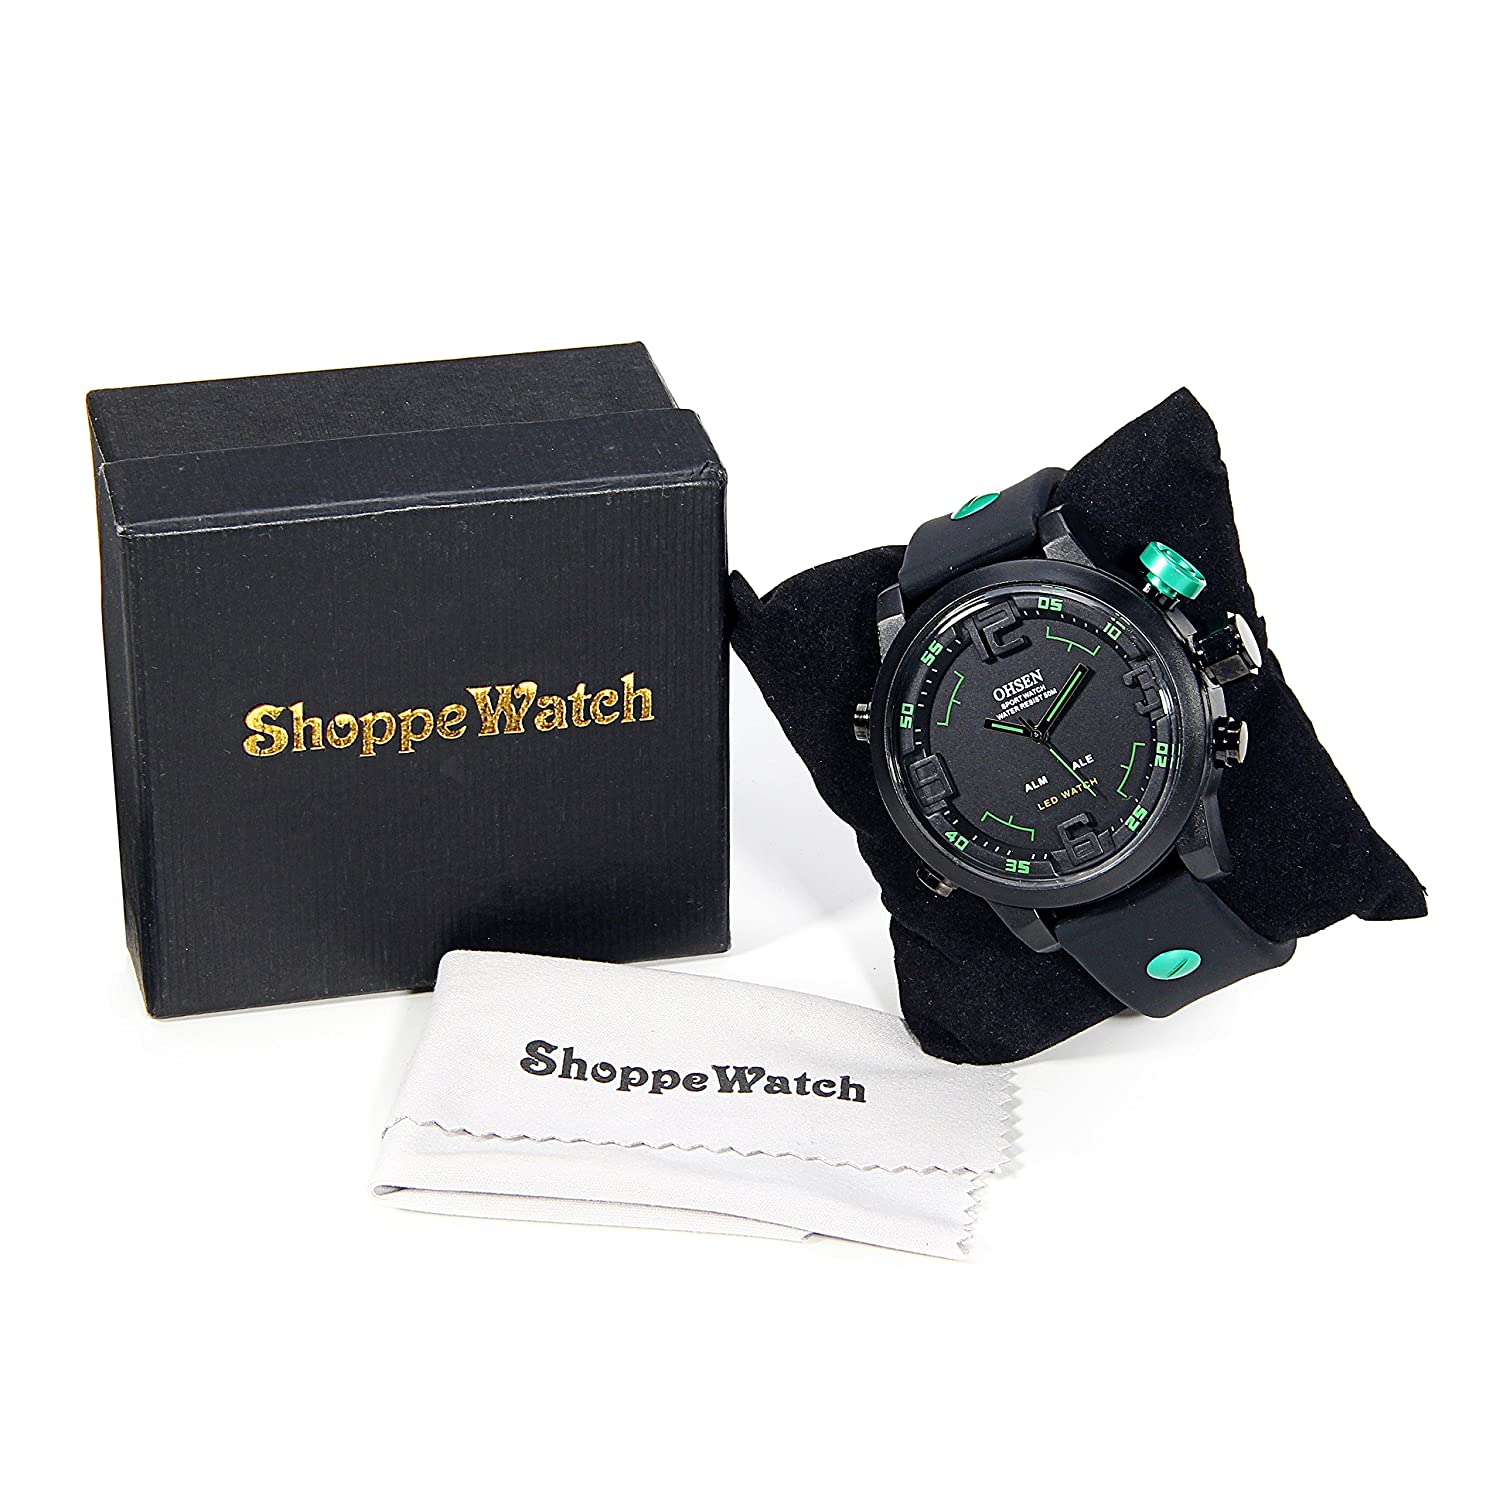 Amazon.com: ShoppeWatch Mens LED Watch Black Silicone Band Dual Time Date Day Sport Green Hand Reloj de Hombre OH-250: Watches